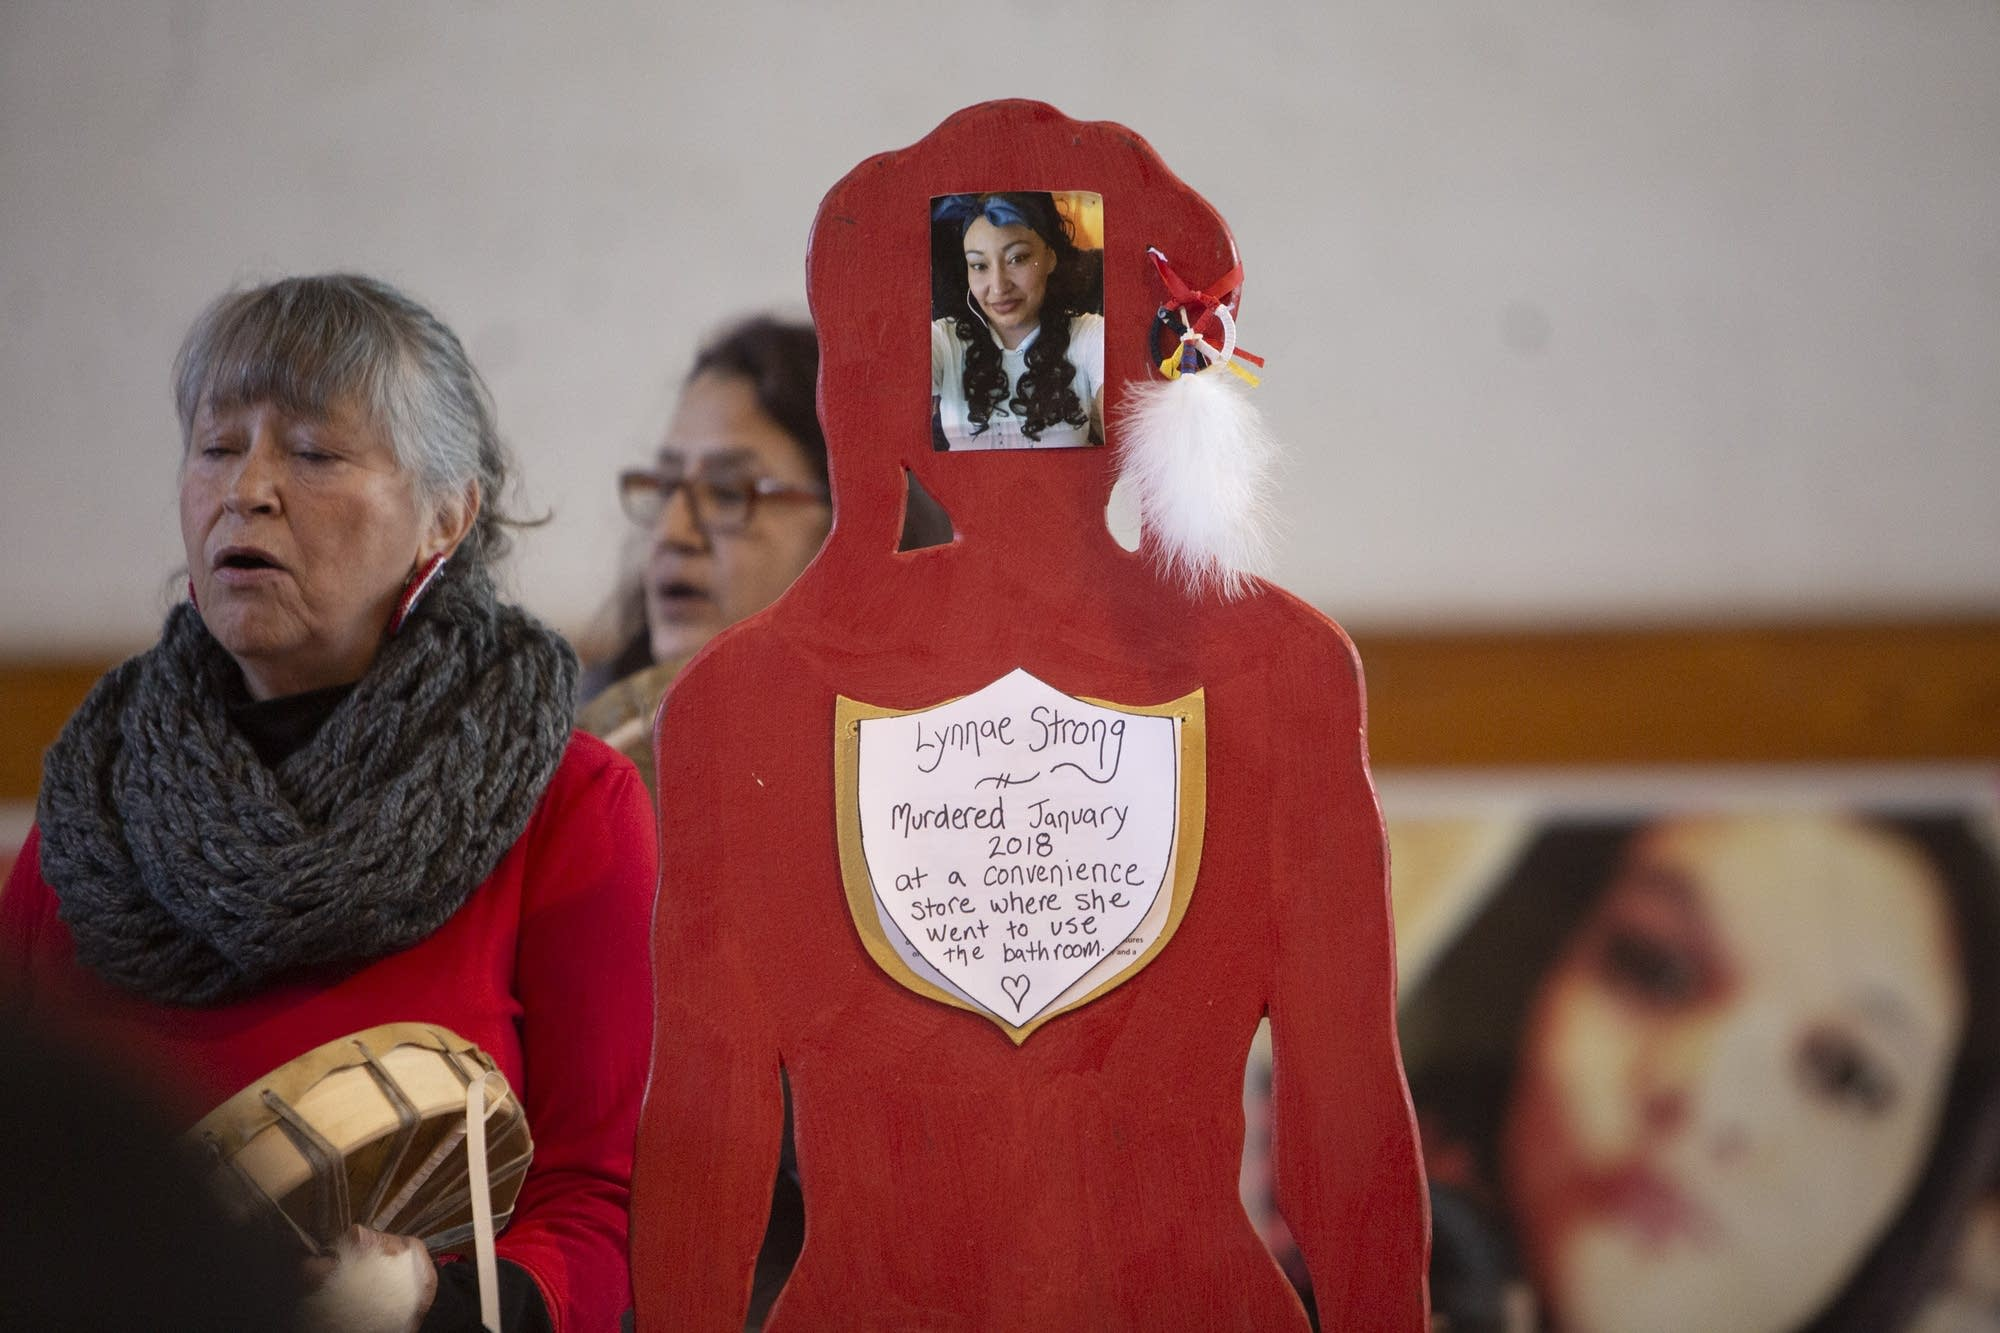 A photograph of Lynnae Strong is displayed at a rally.